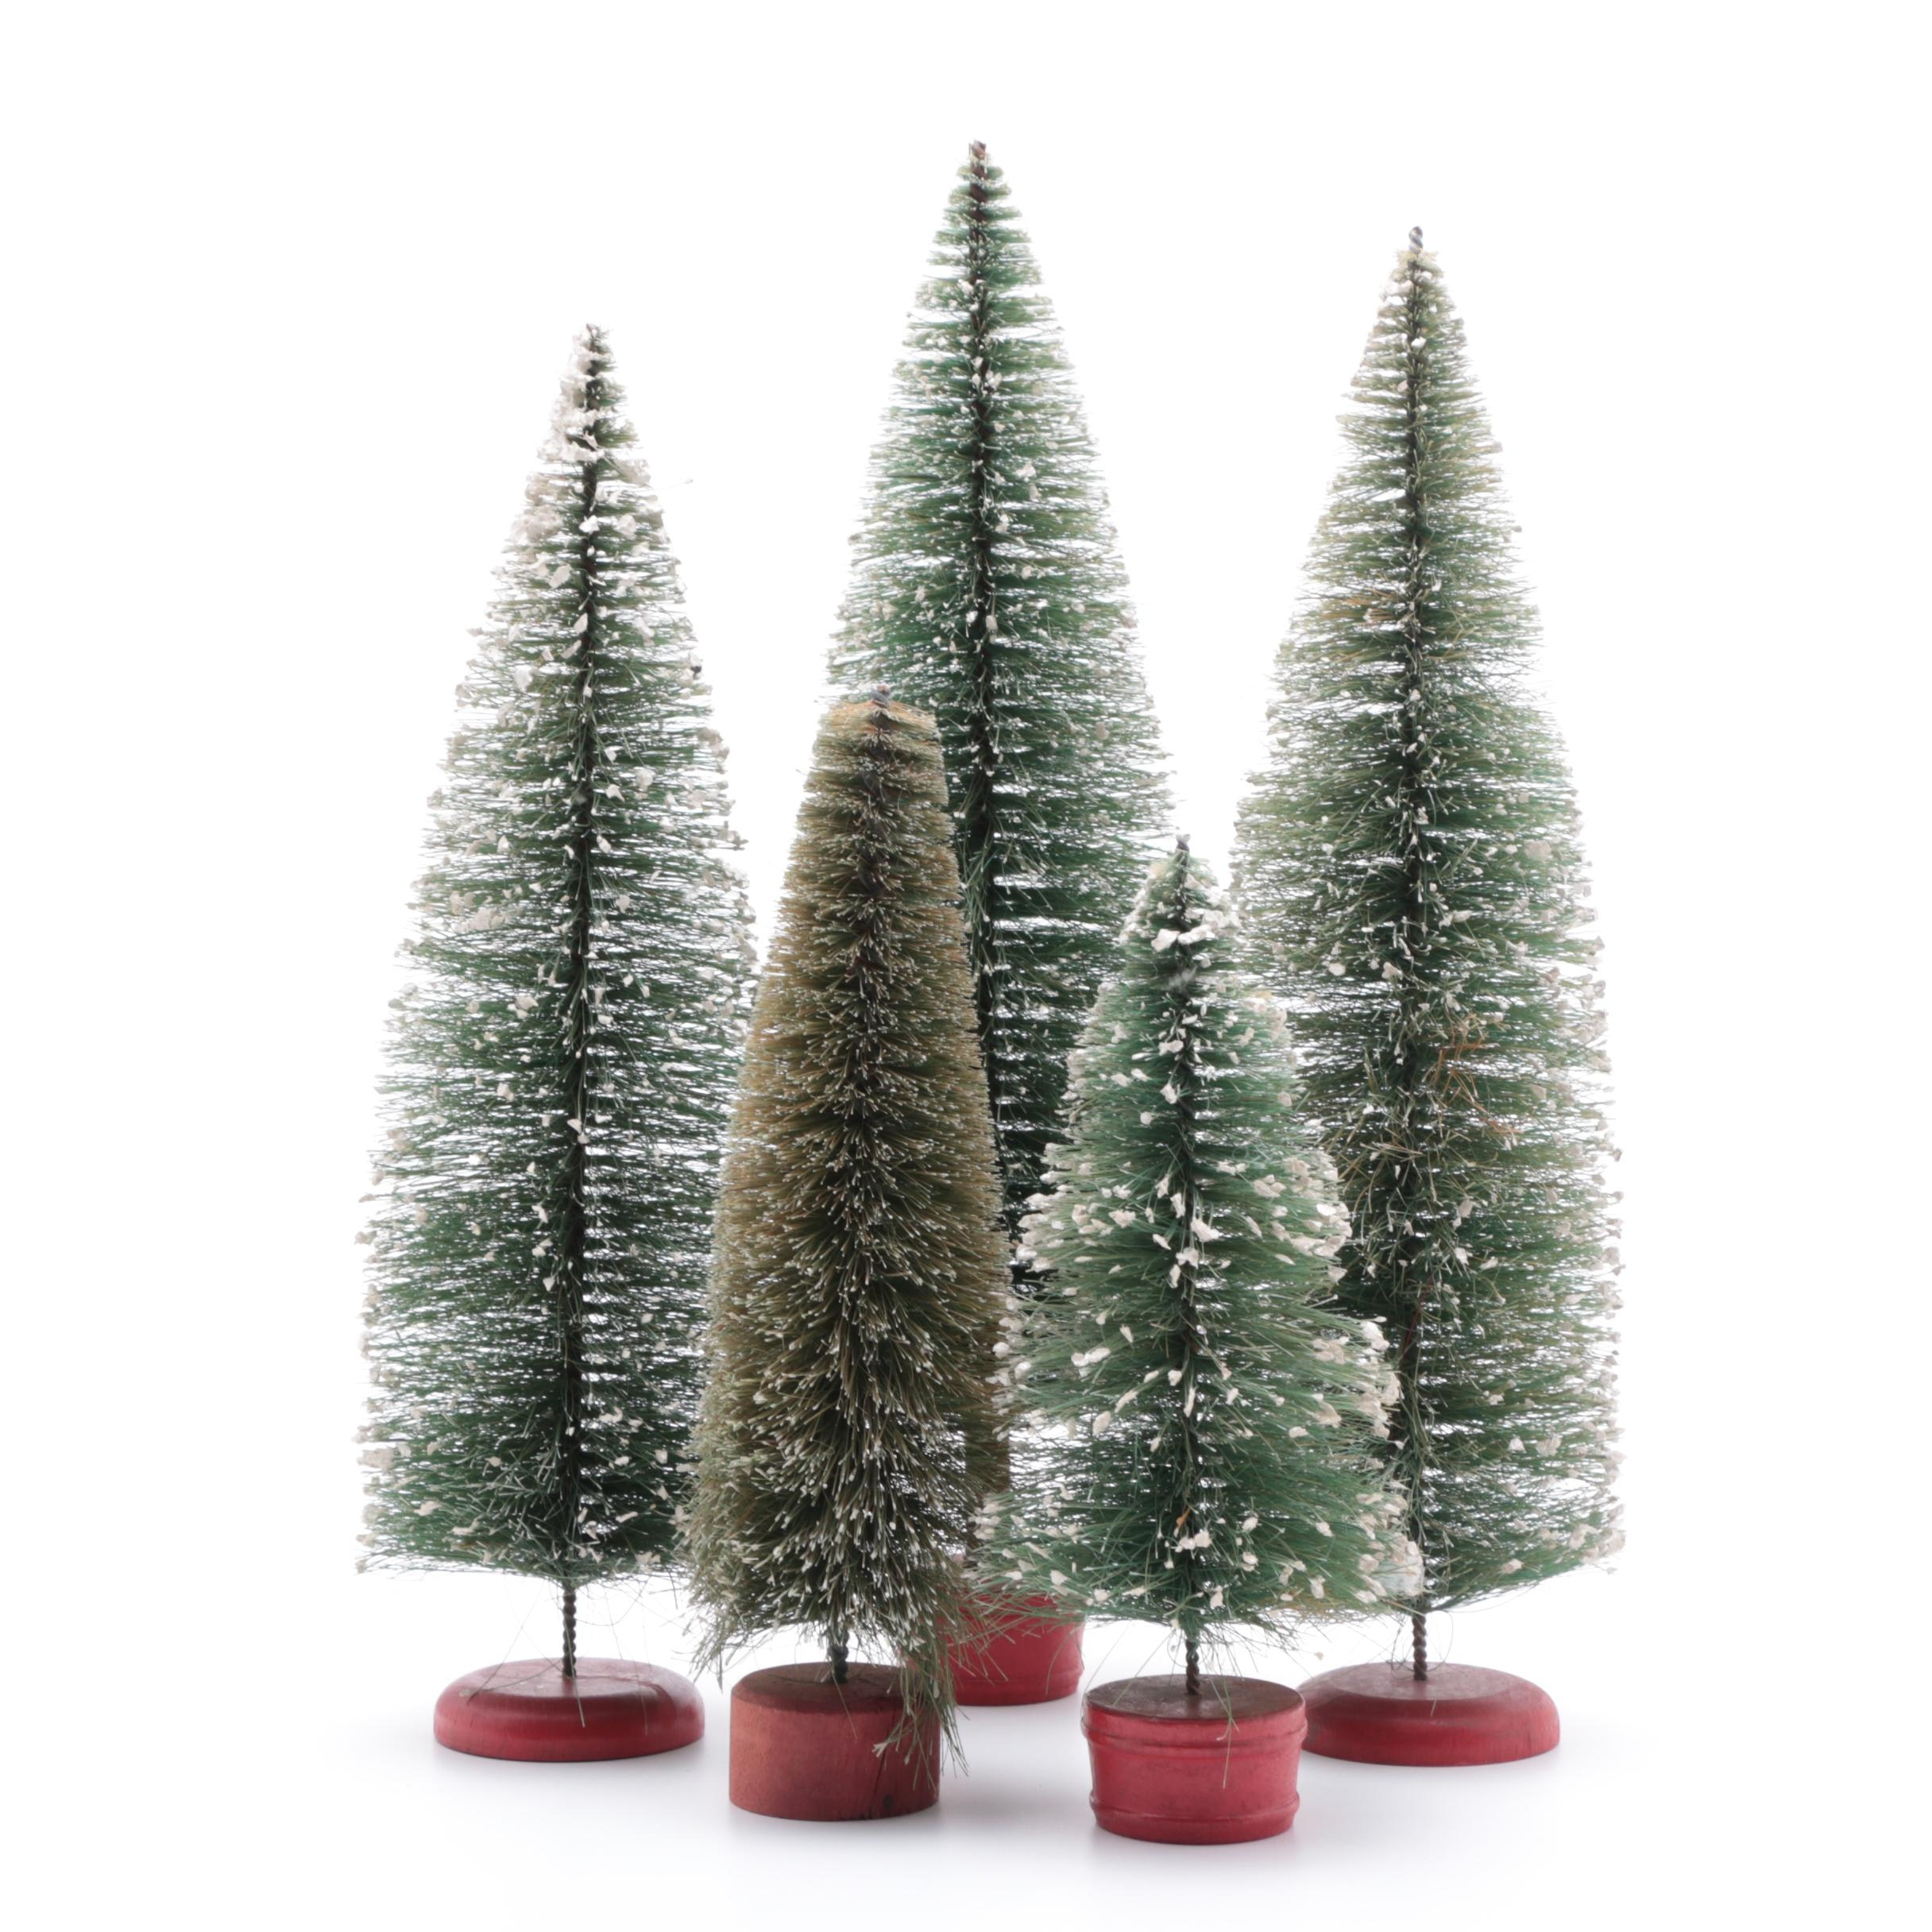 Five Vintage Tapered Bottle Brush Evergreen Trees with Flocked Snow